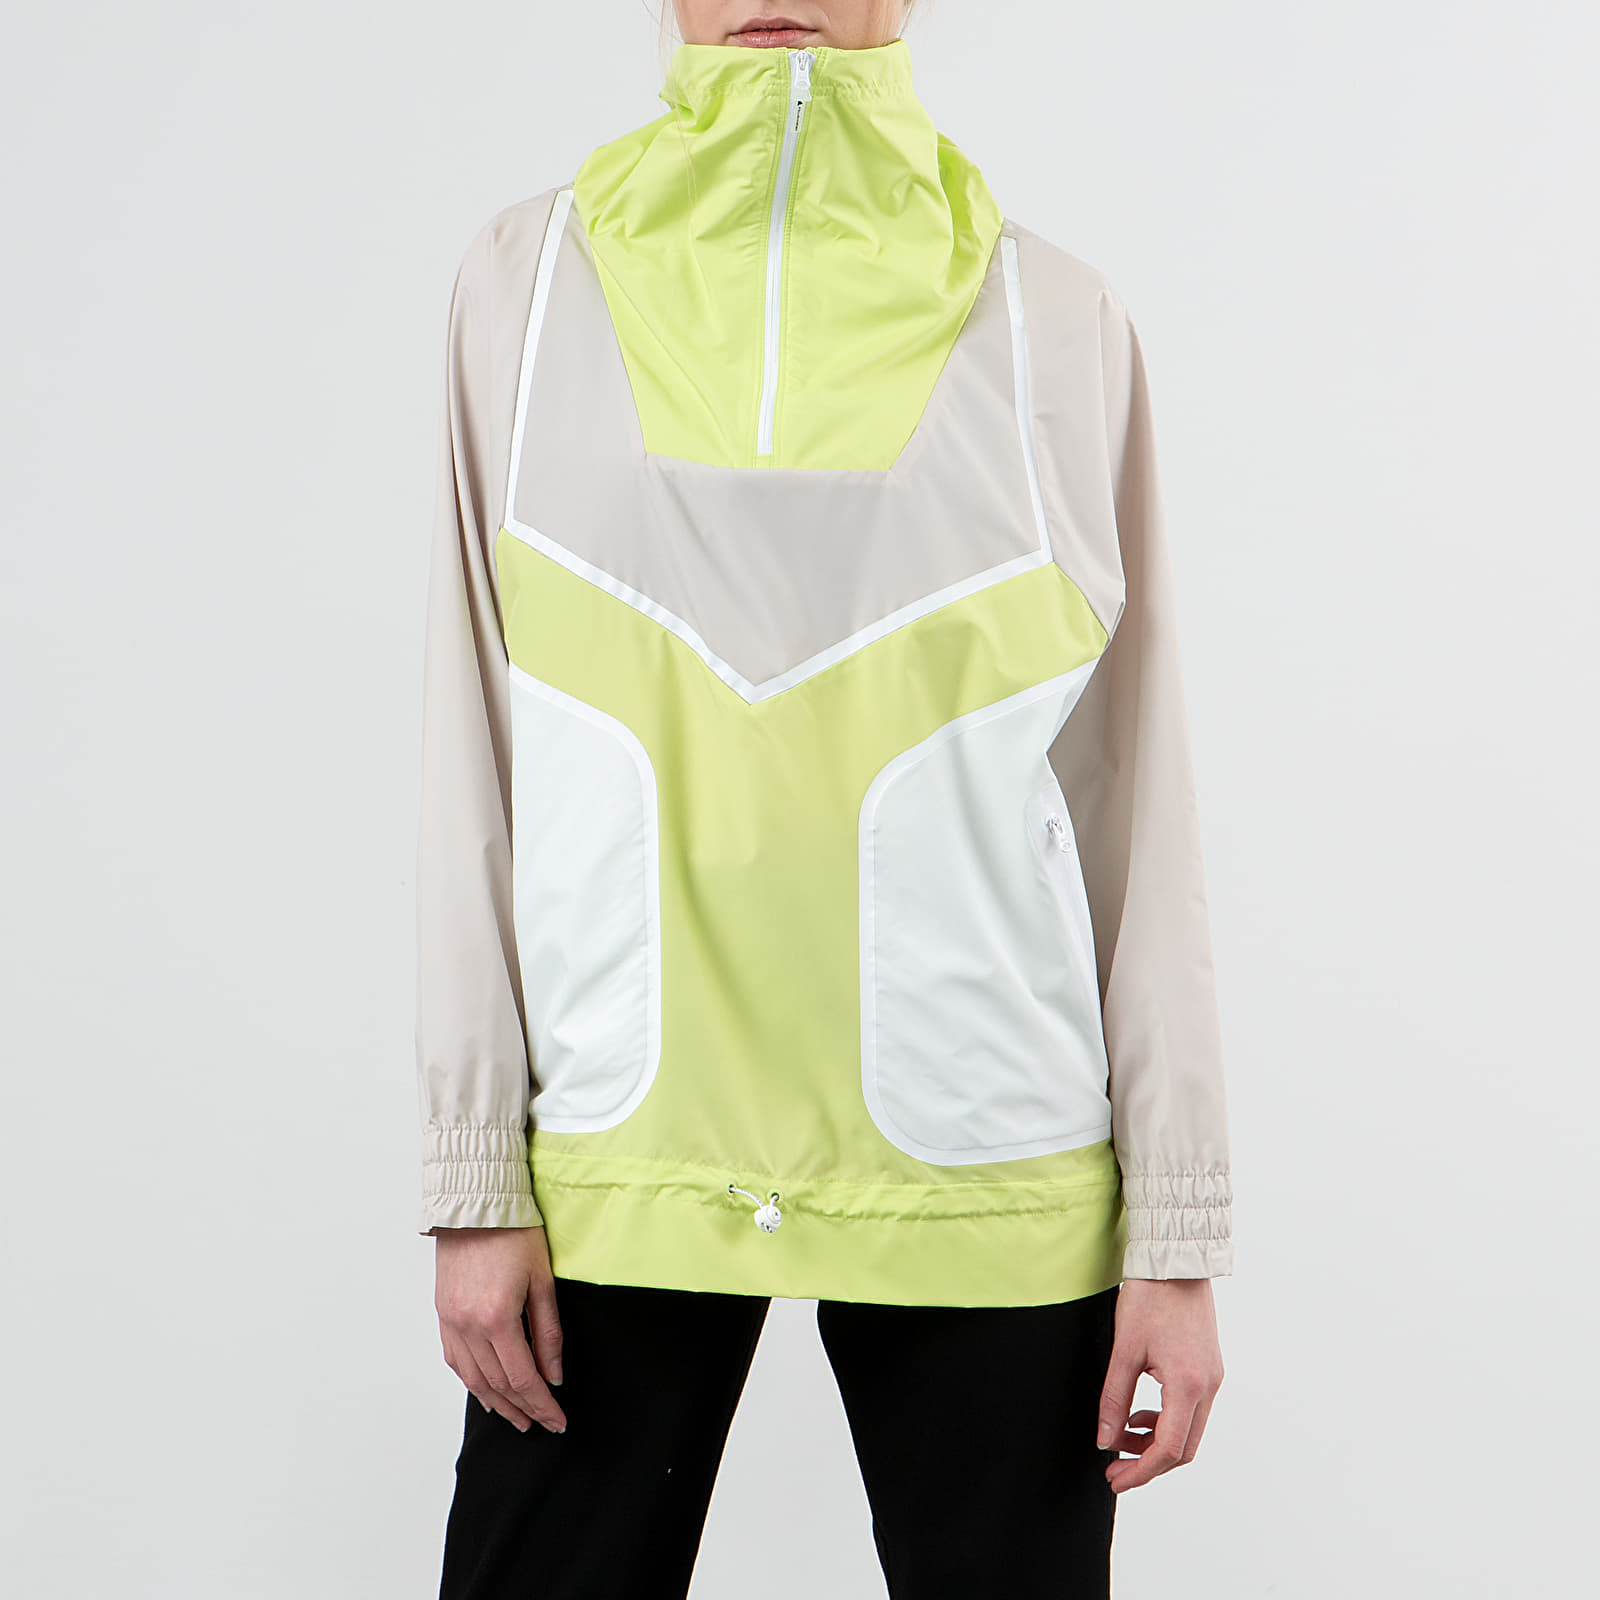 adidas x Stella McCartney Adizero Half Zip Jacket